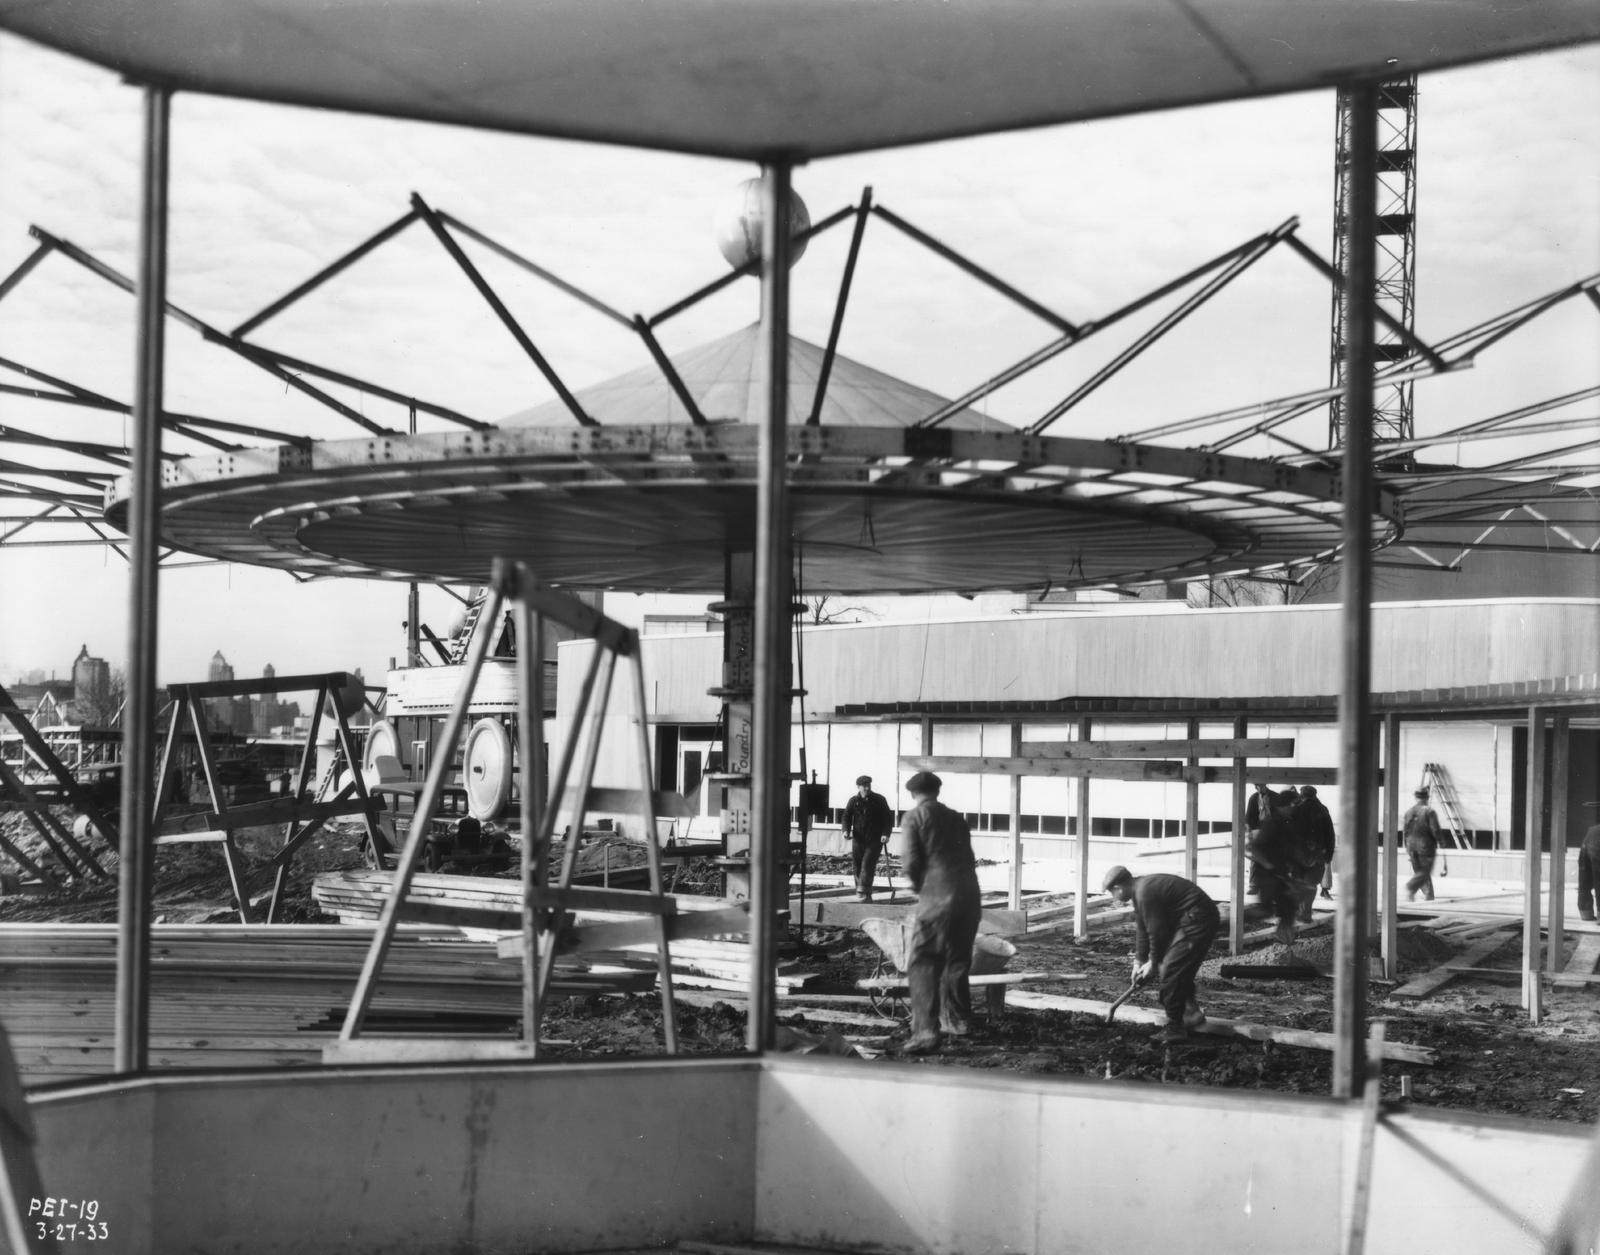 [Construction of the Gazebo in preparation for the Enchanted Island exhibit at A Century of Progress. The photo was taken in March of 1933, a few months before the grand opening of the Fair.]